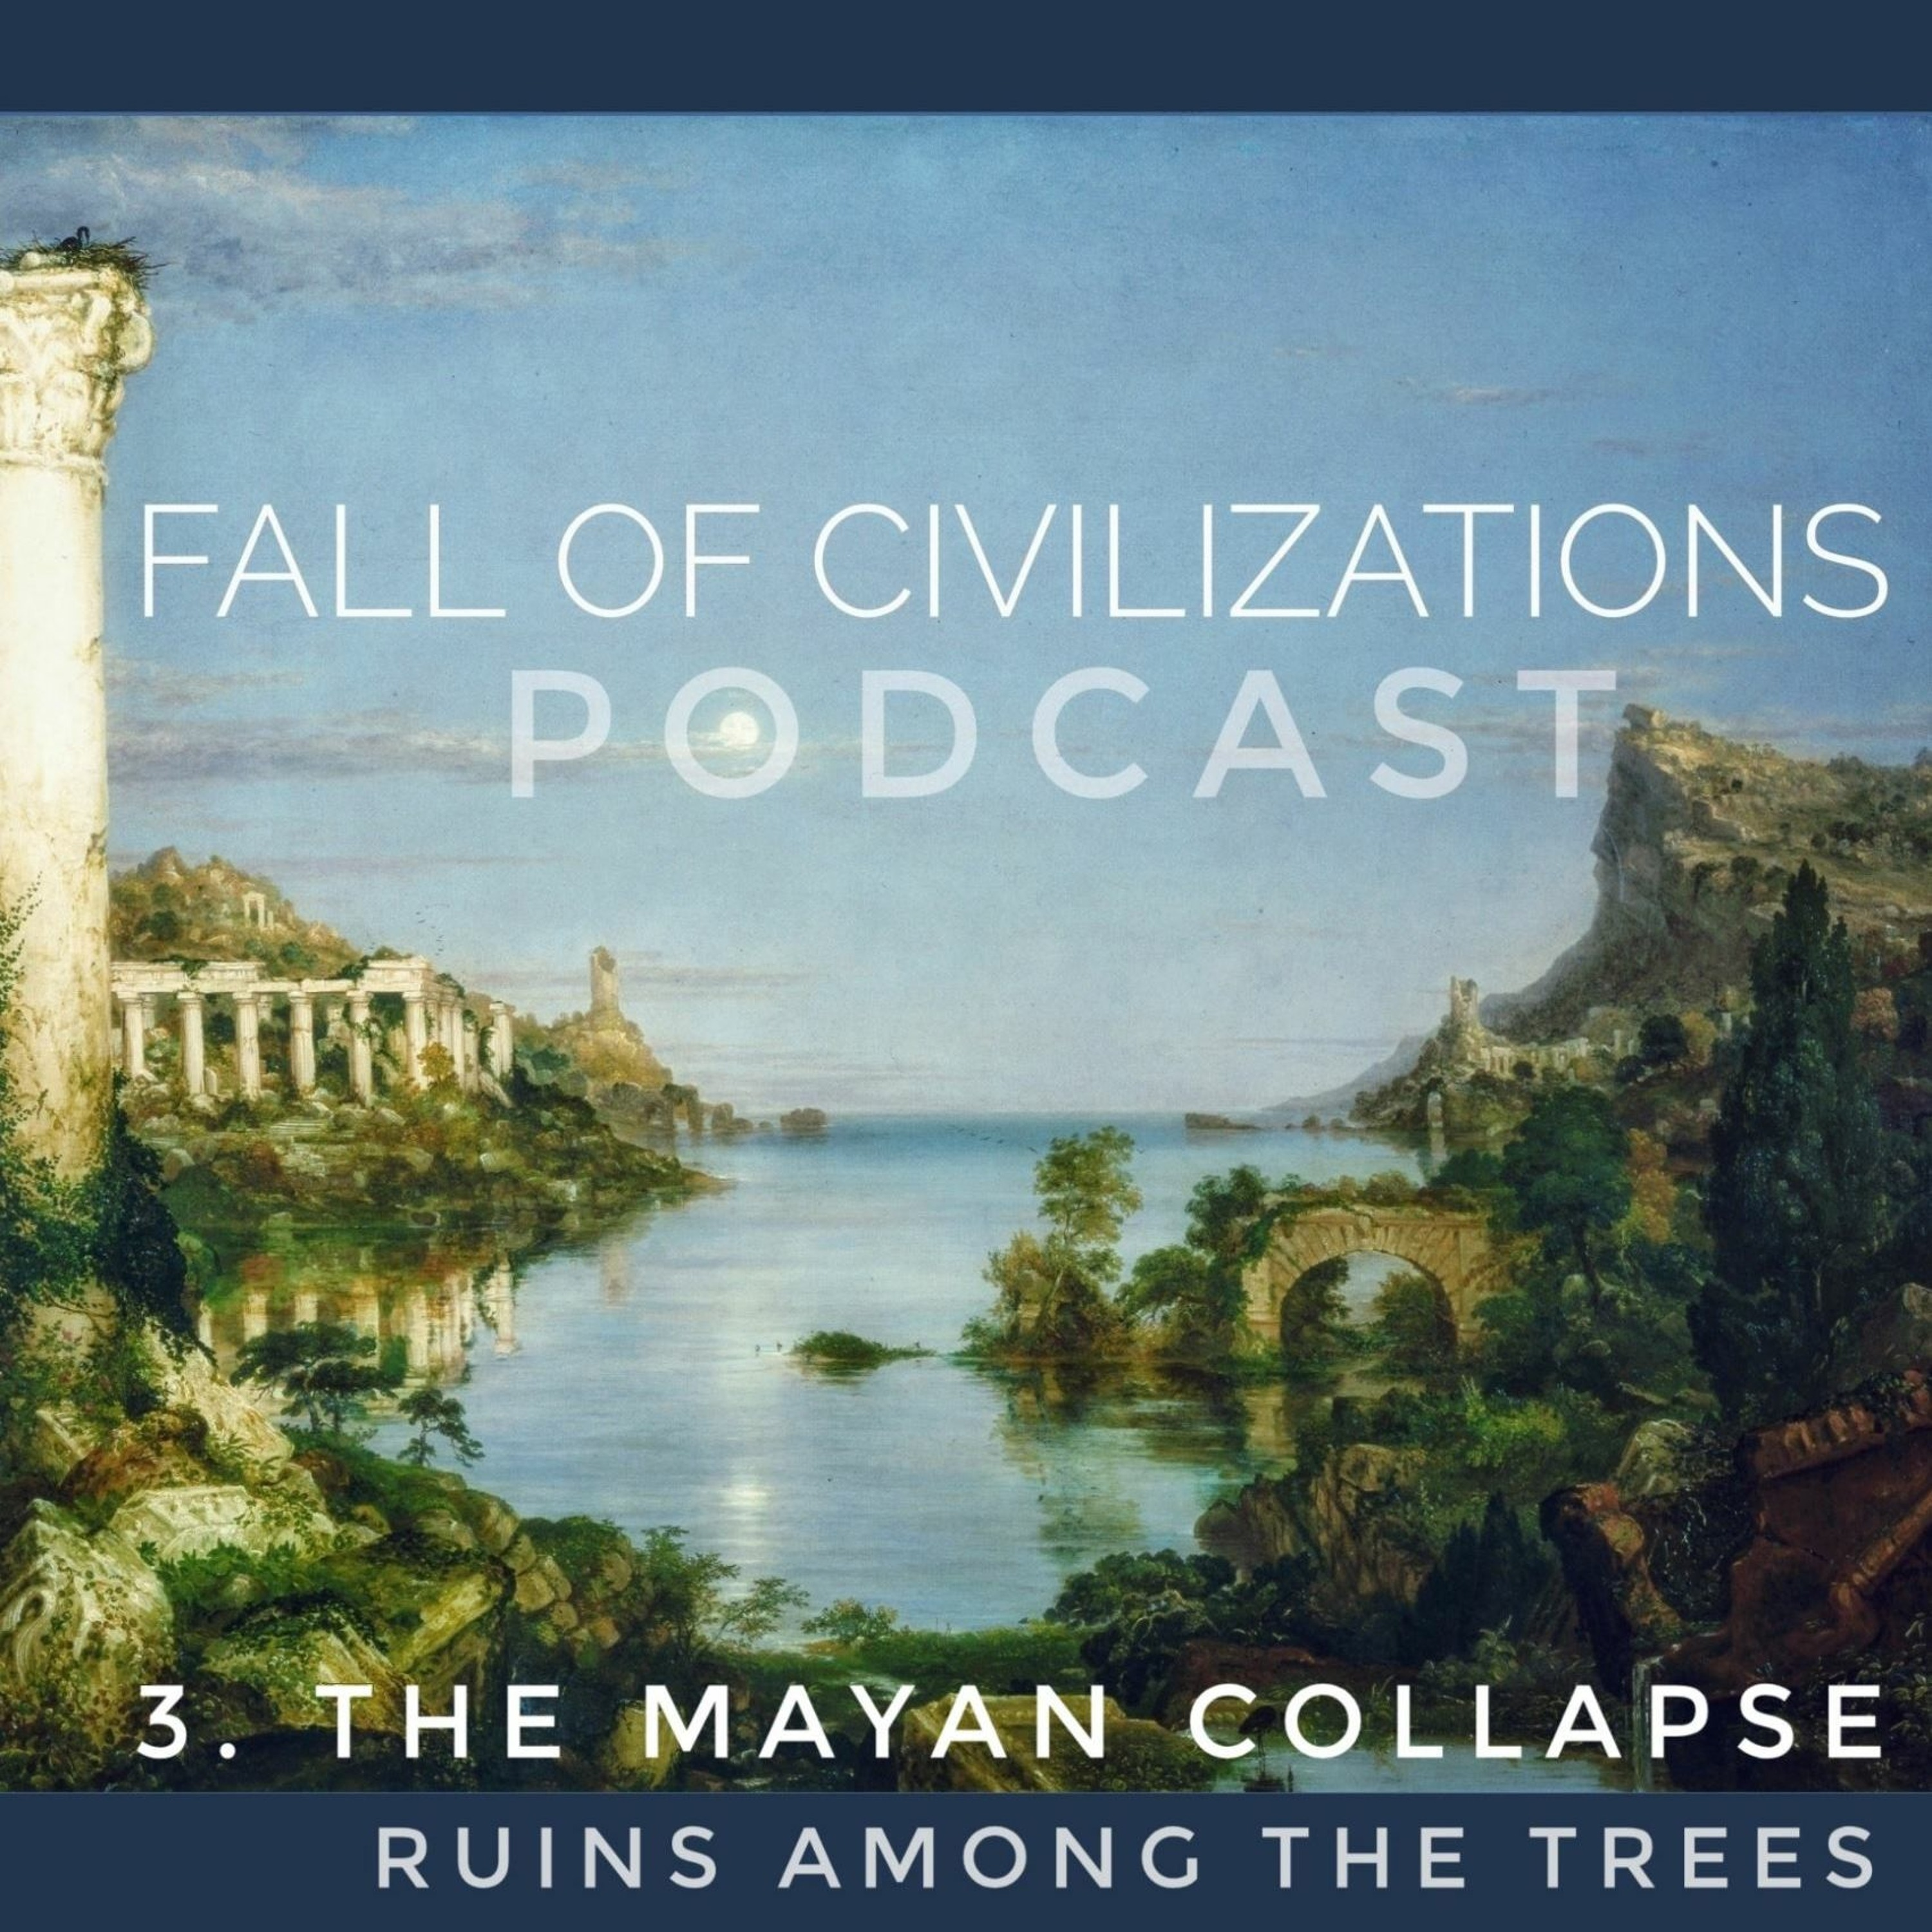 3. The Mayan Collapse - Ruins Among the Trees